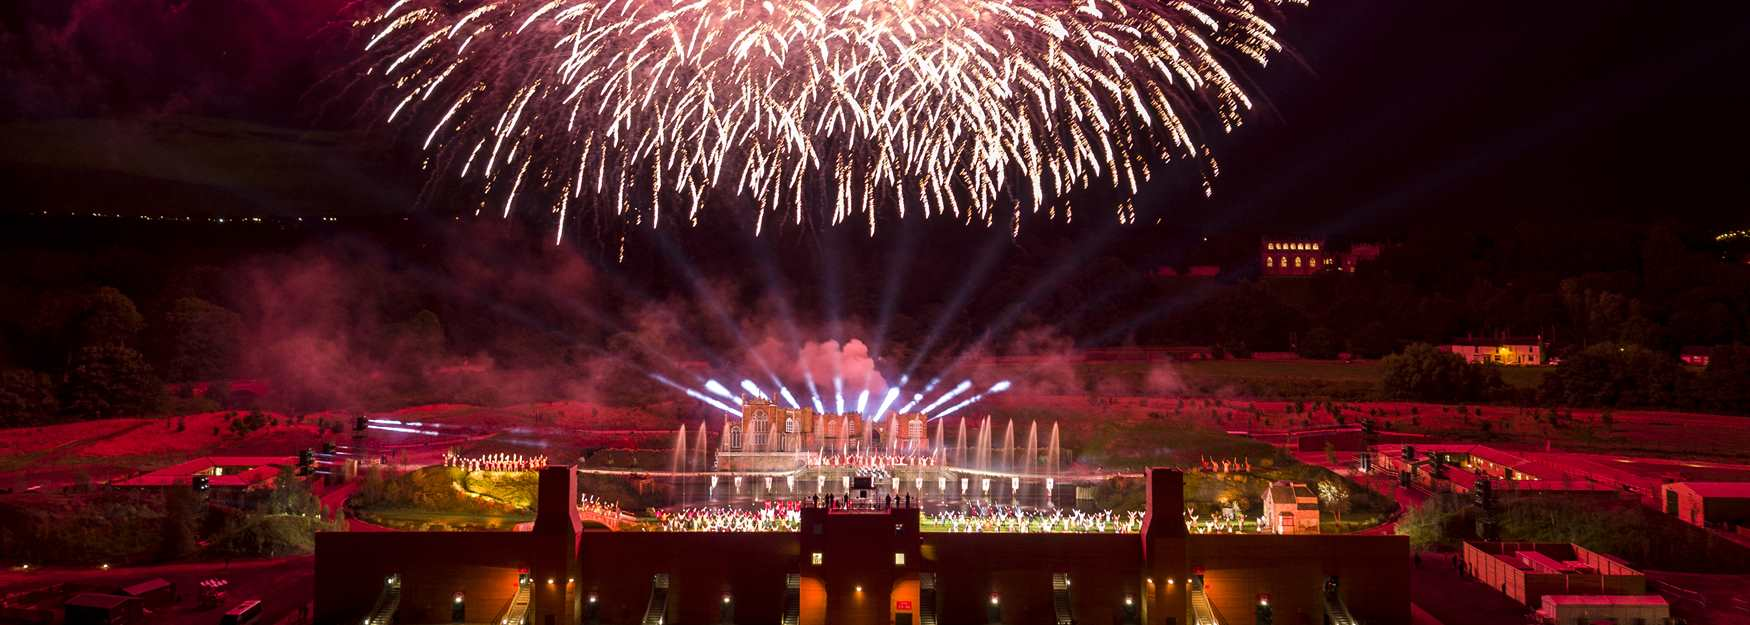 KYNREN- THE UK'S MOST SPECTACULAR OPEN-AIR LIVE SHOW